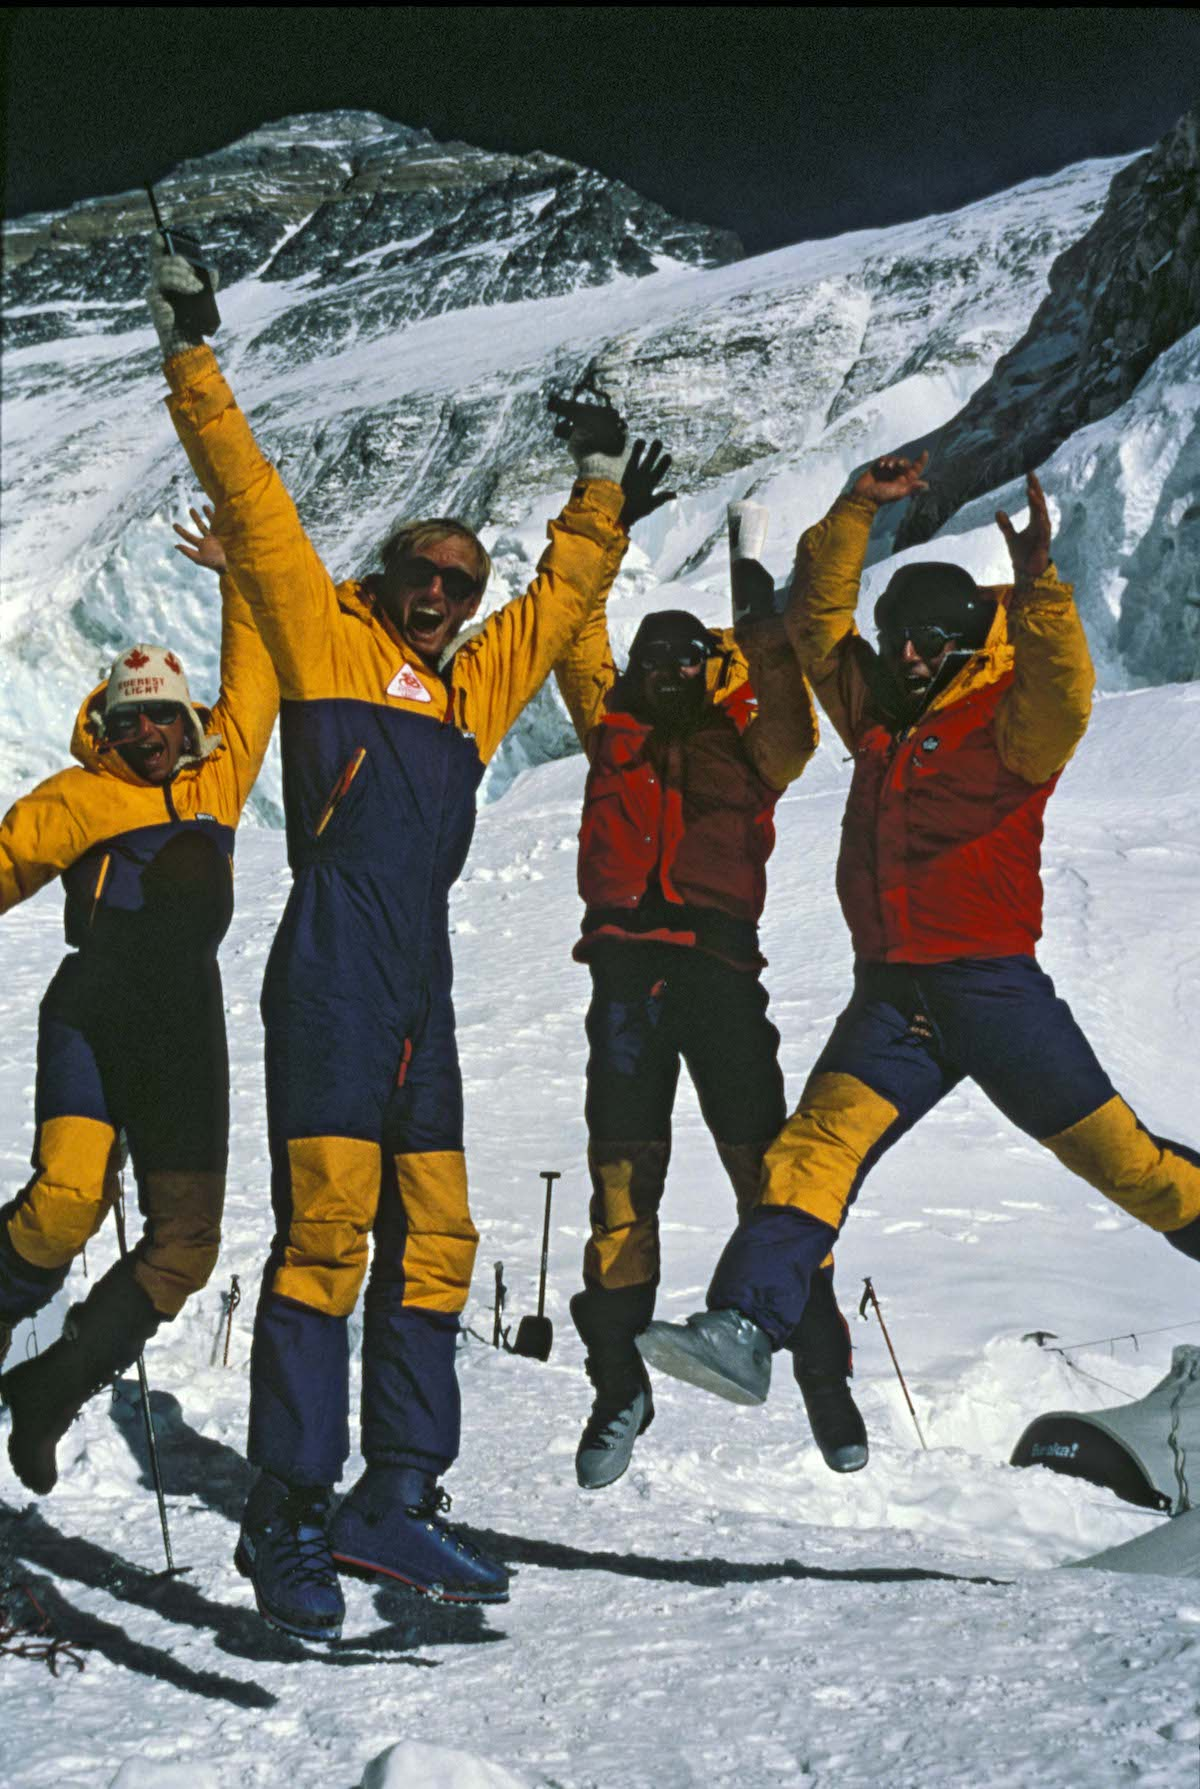 Everest Light Team celebrates after summit news. [Photo] Chris Shank, courtesy of Mountaineers Books